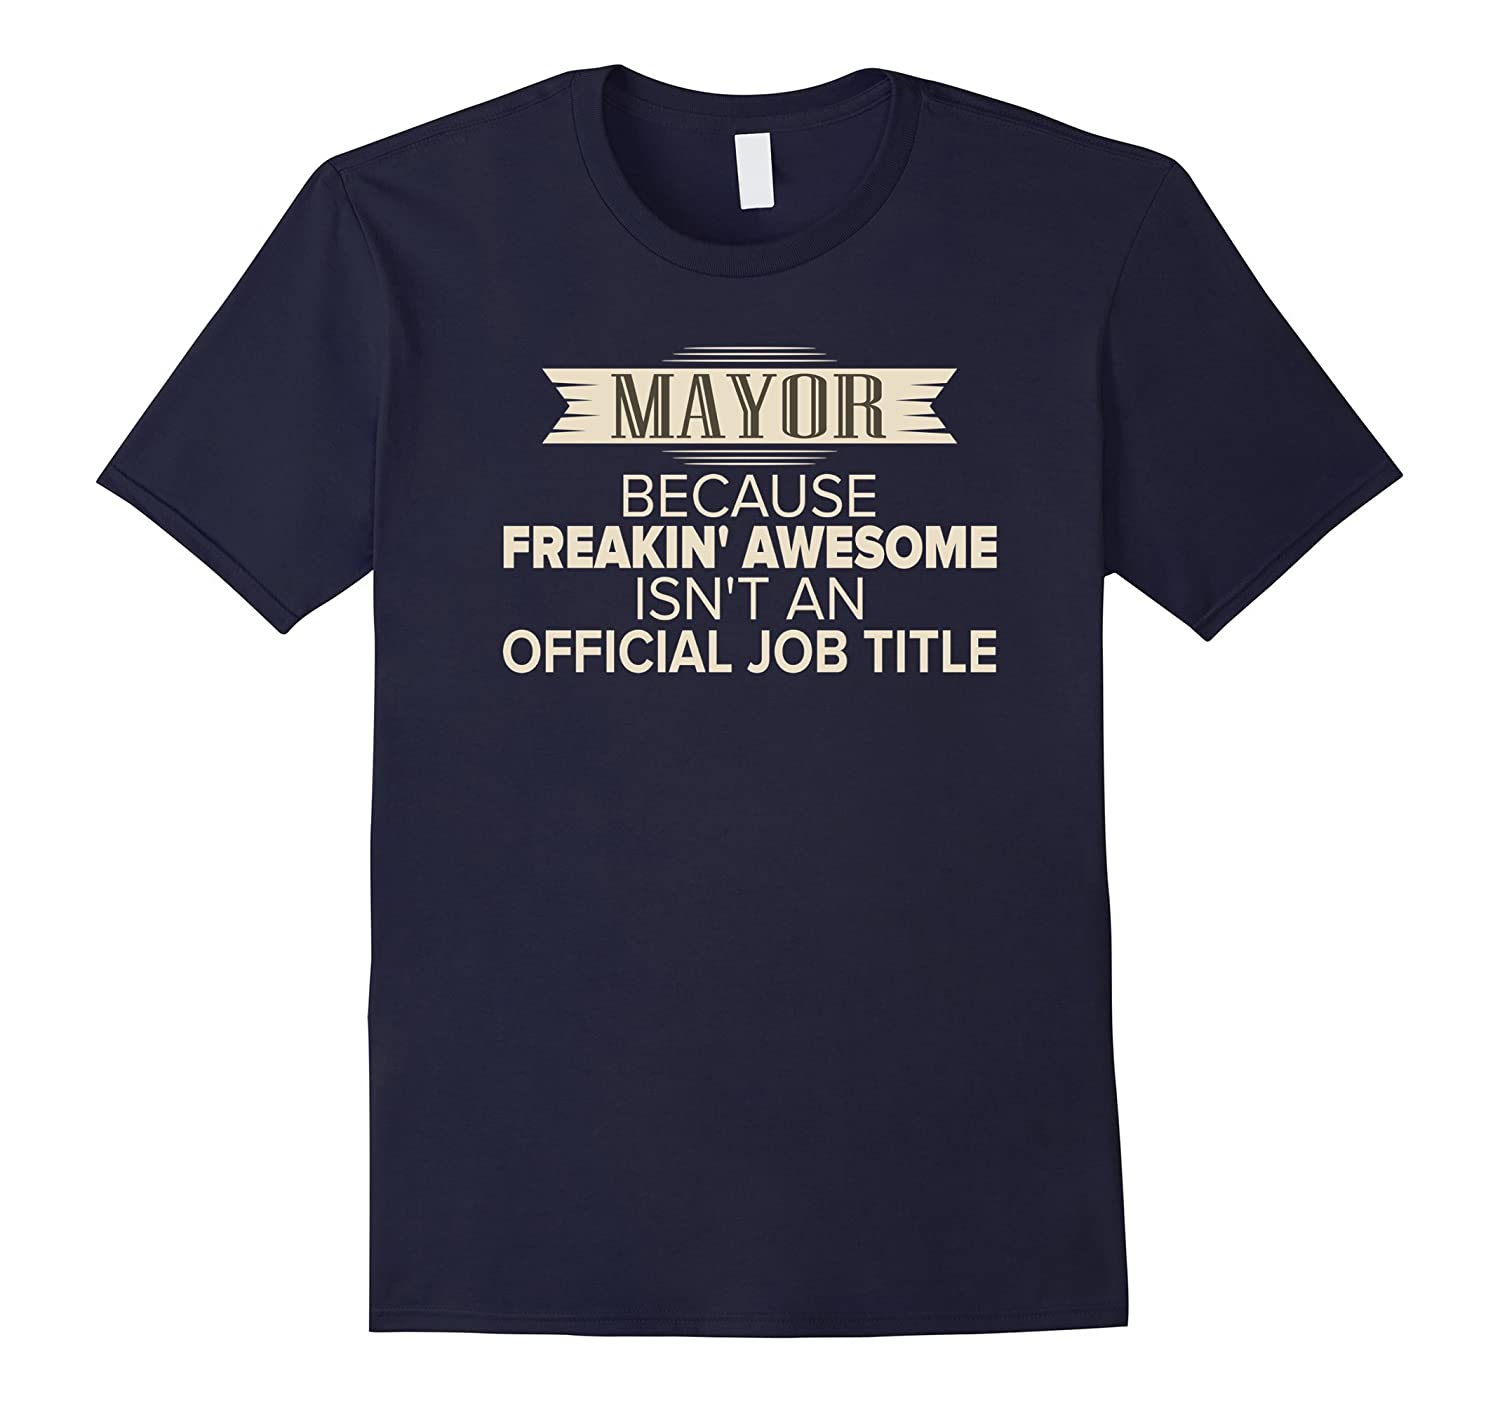 Mayor T-shirt - Freakin awesome isnt an official job title-Vaci